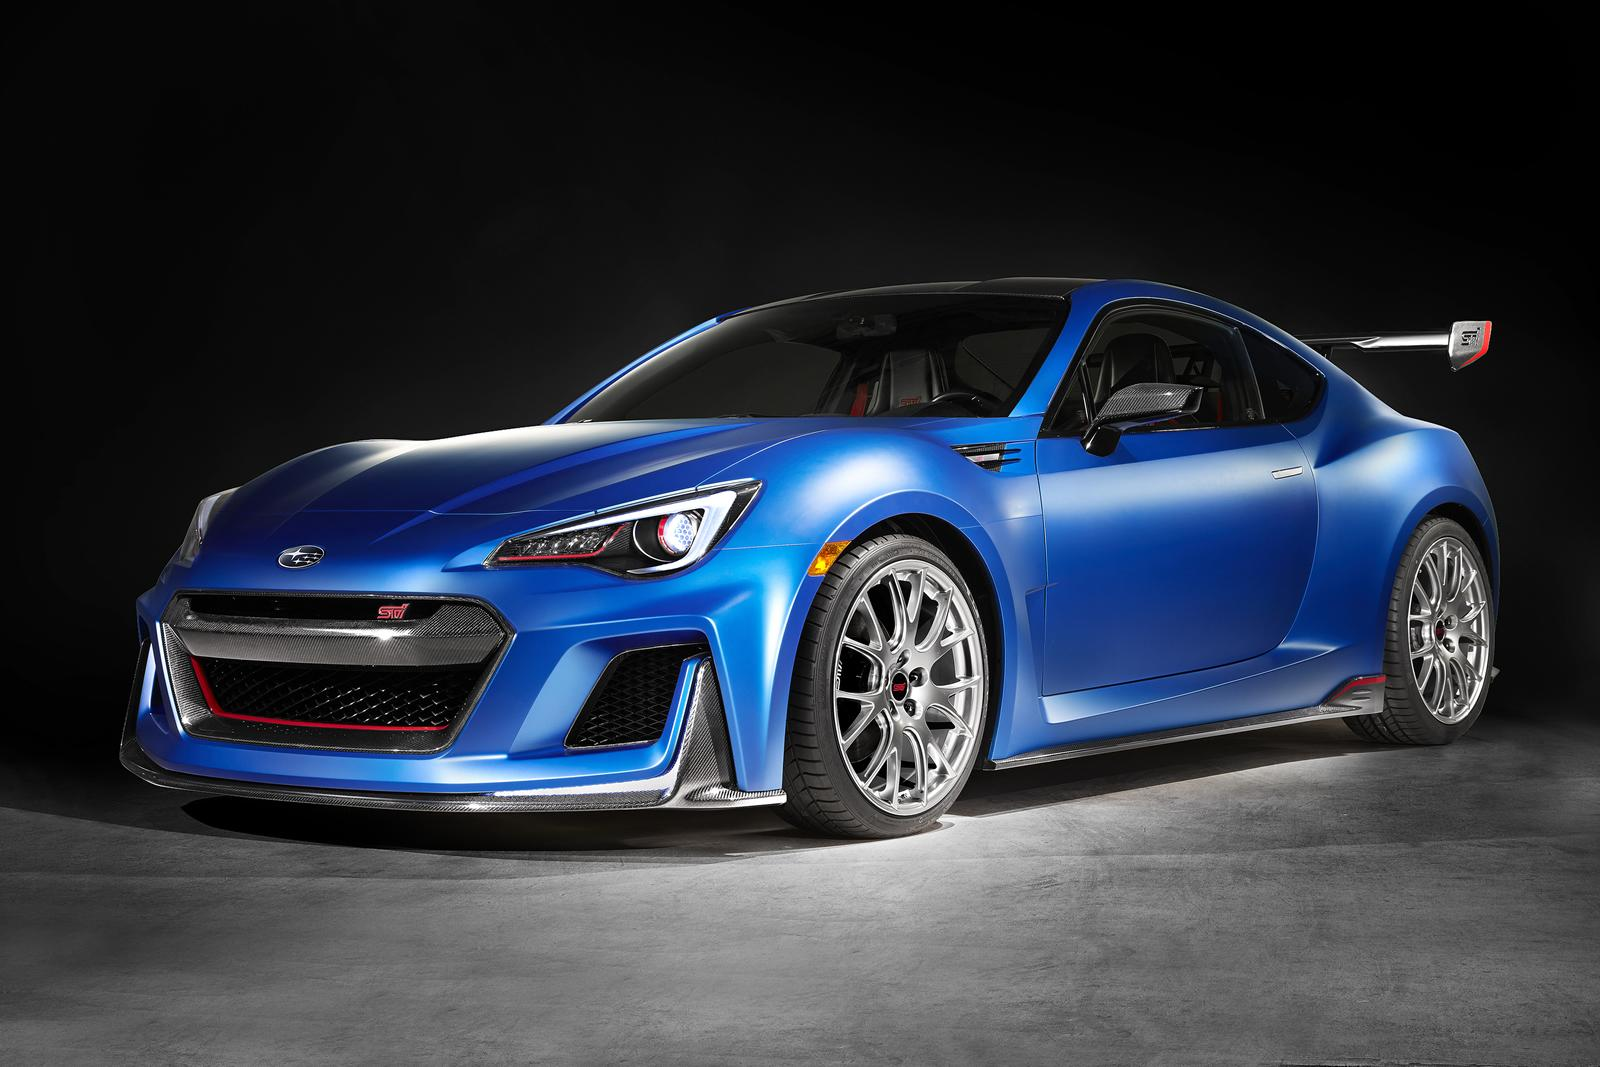 subaru to launch sti version of the brz model for the us market